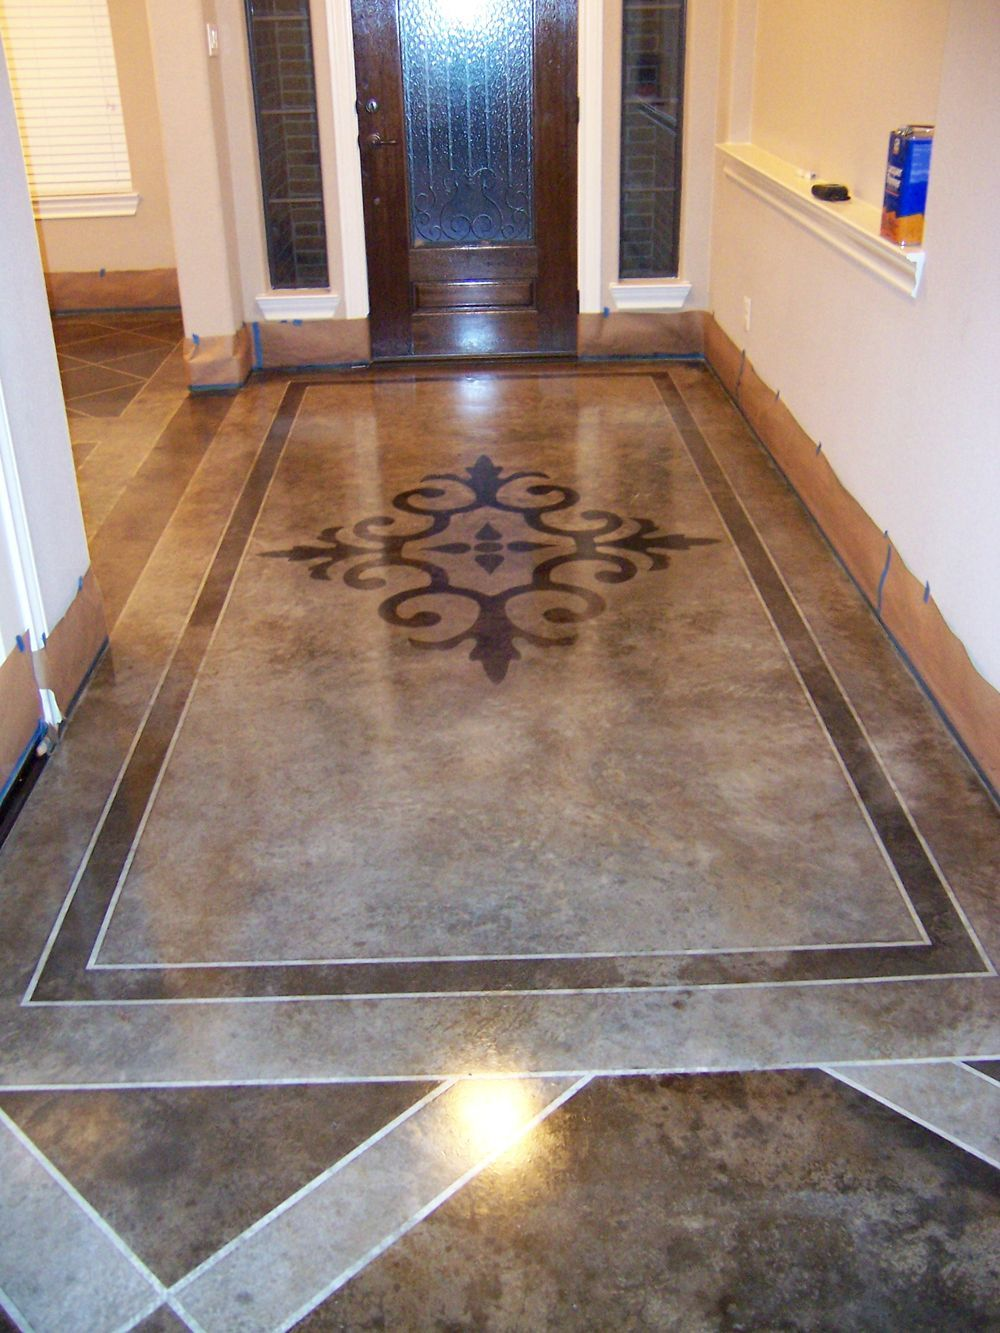 Stained Concrete Floor, Idea For Front Porch